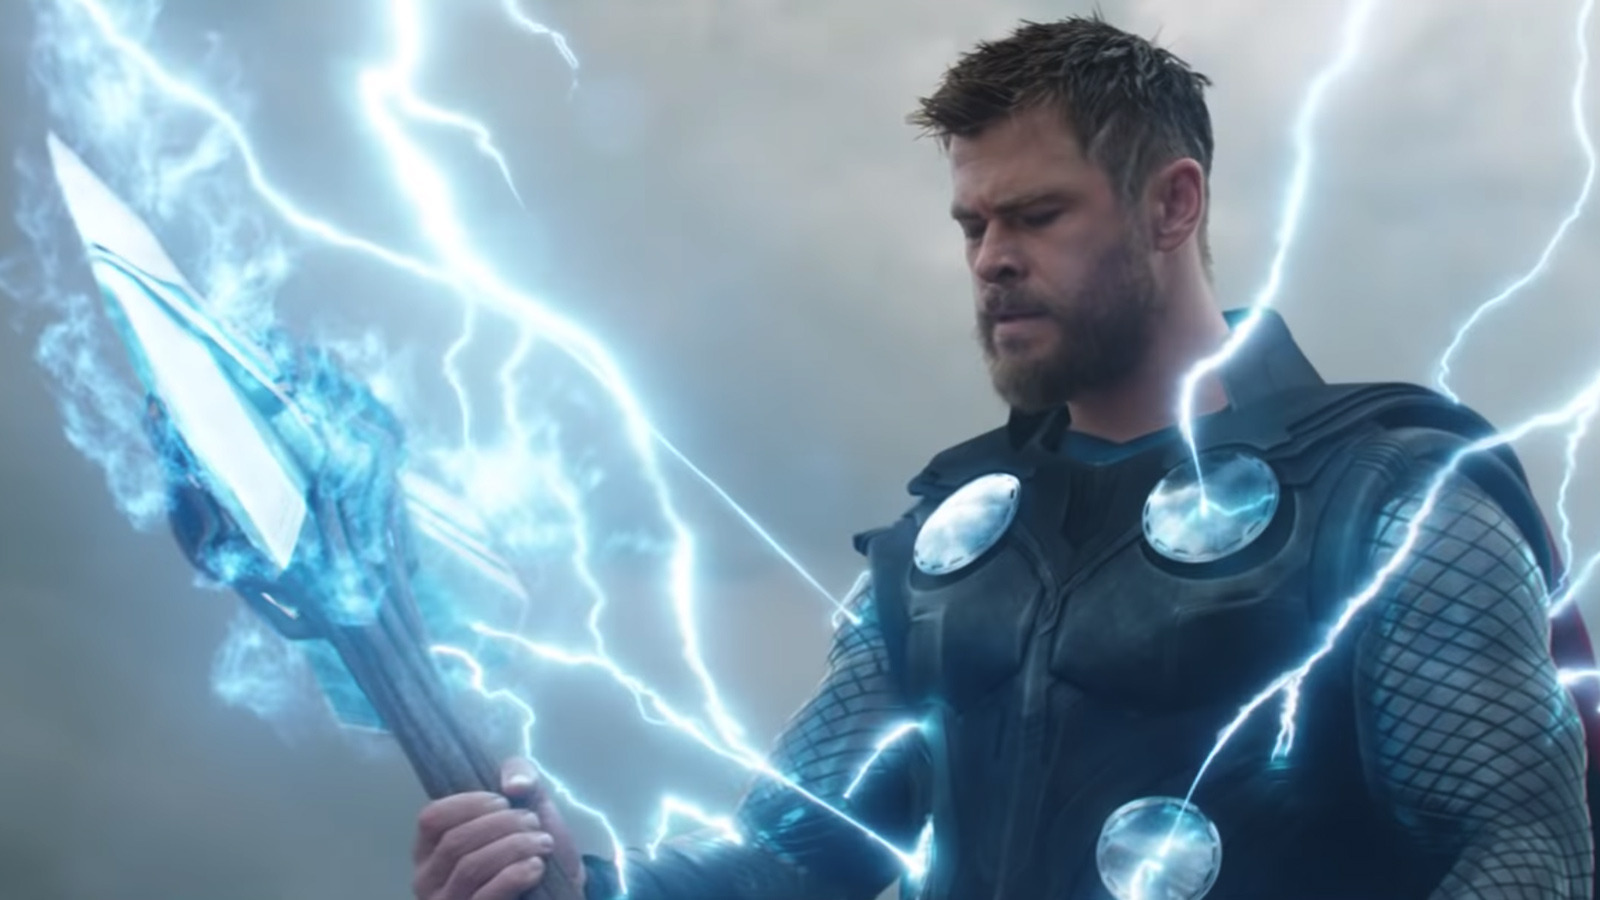 the hidden avengers references in endgame - nz herald